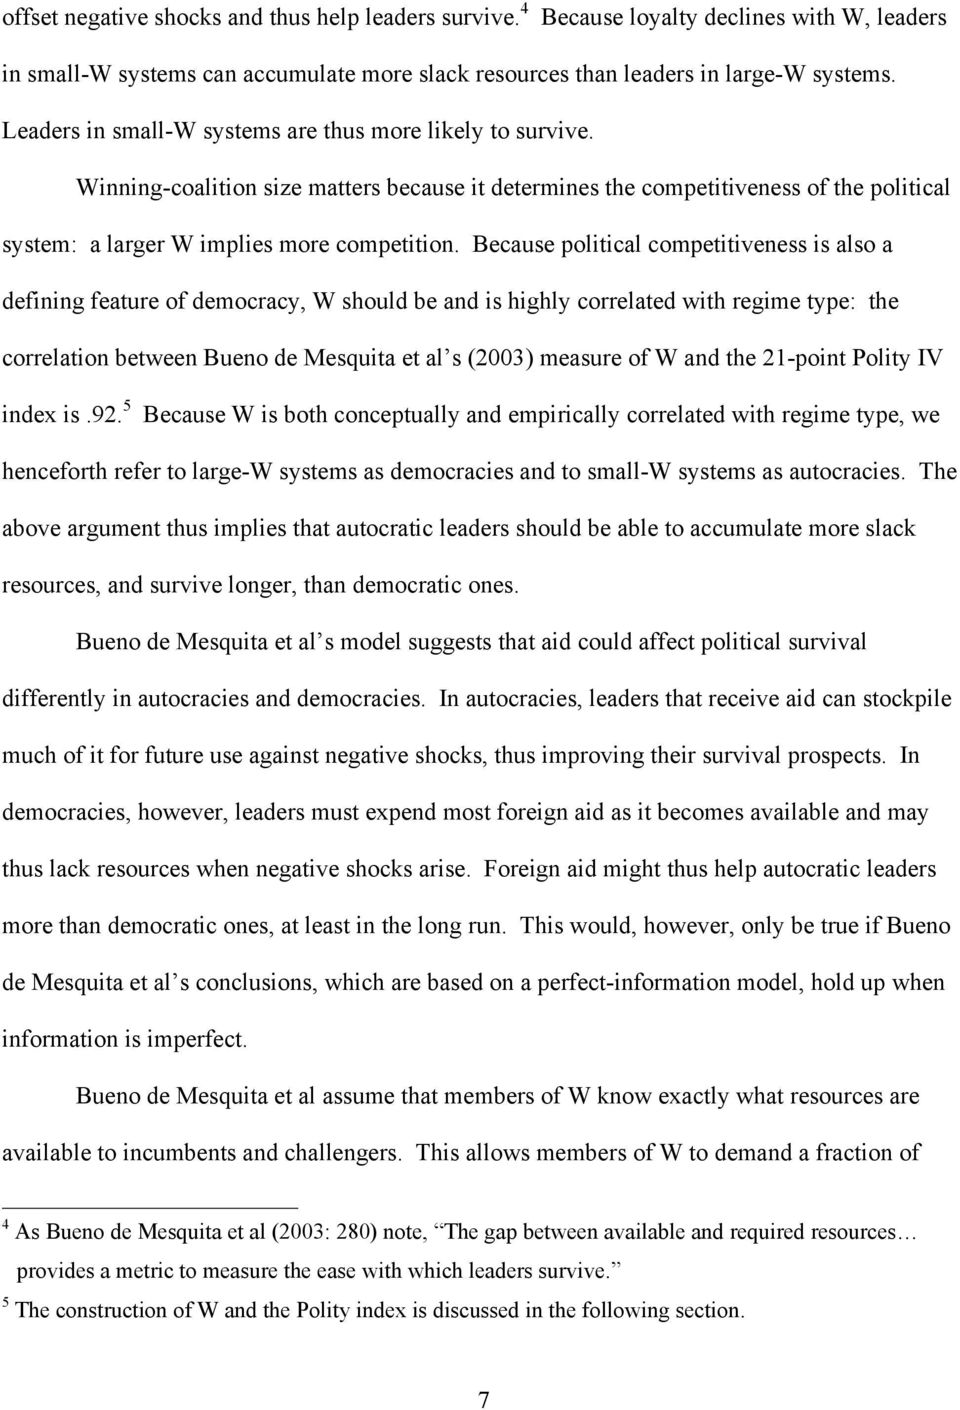 Because political competitiveness is also a defining feature of democracy, W should be and is highly correlated with regime type: the correlation between Bueno de Mesquita et al s (2003) measure of W